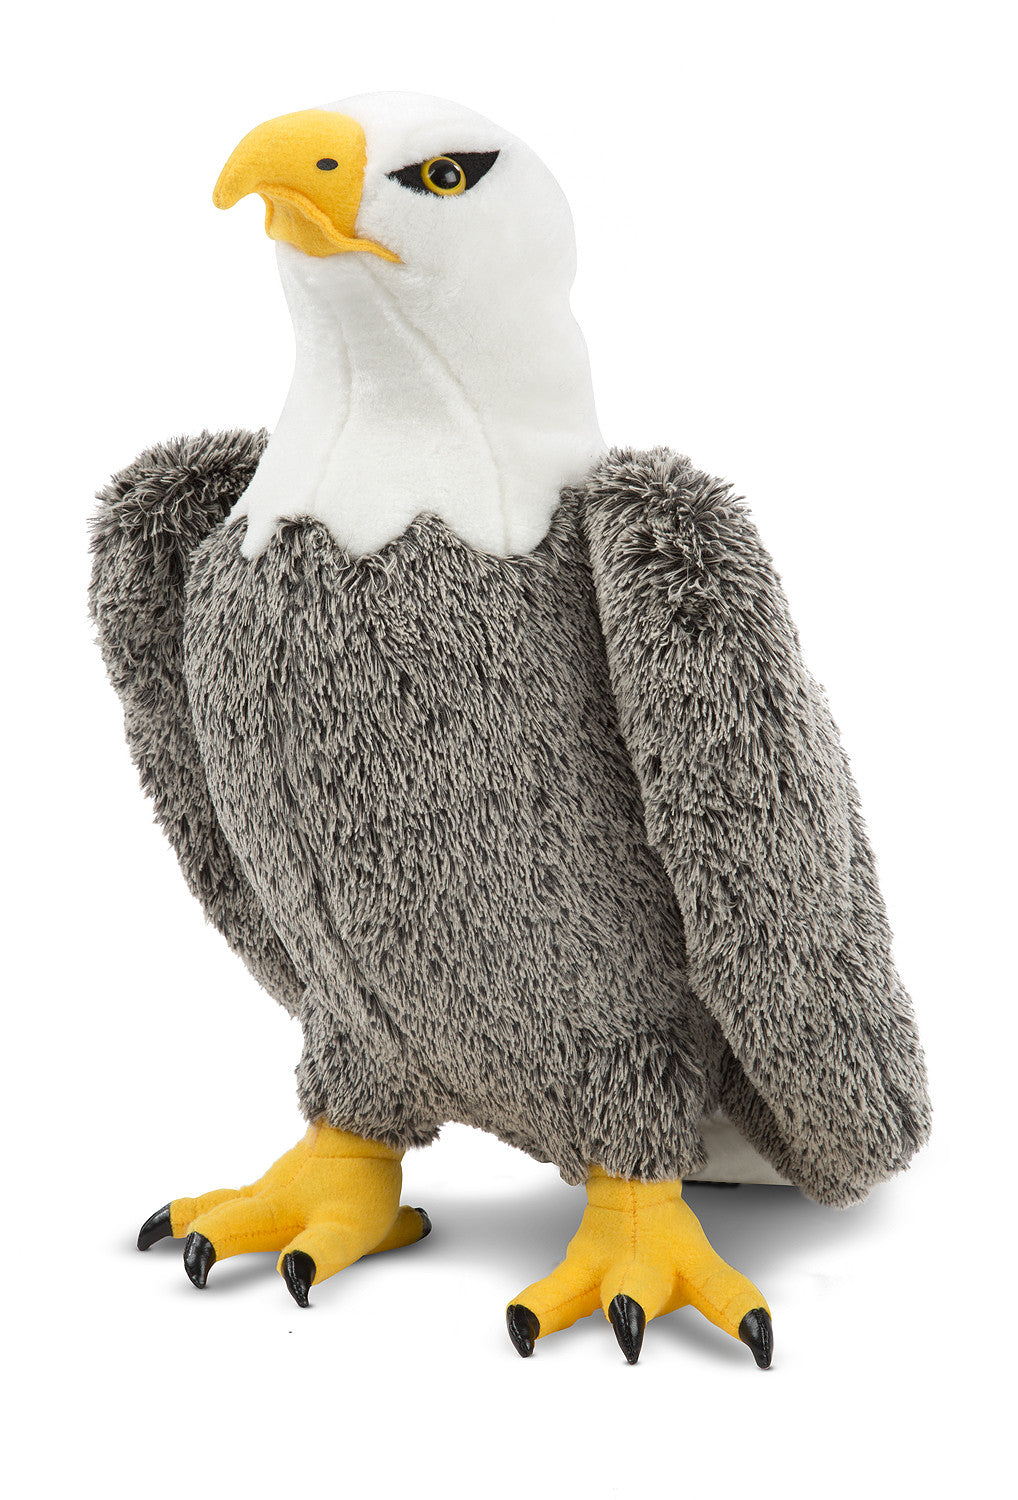 Melissa & Doug Bald Eagle - Plush 8830